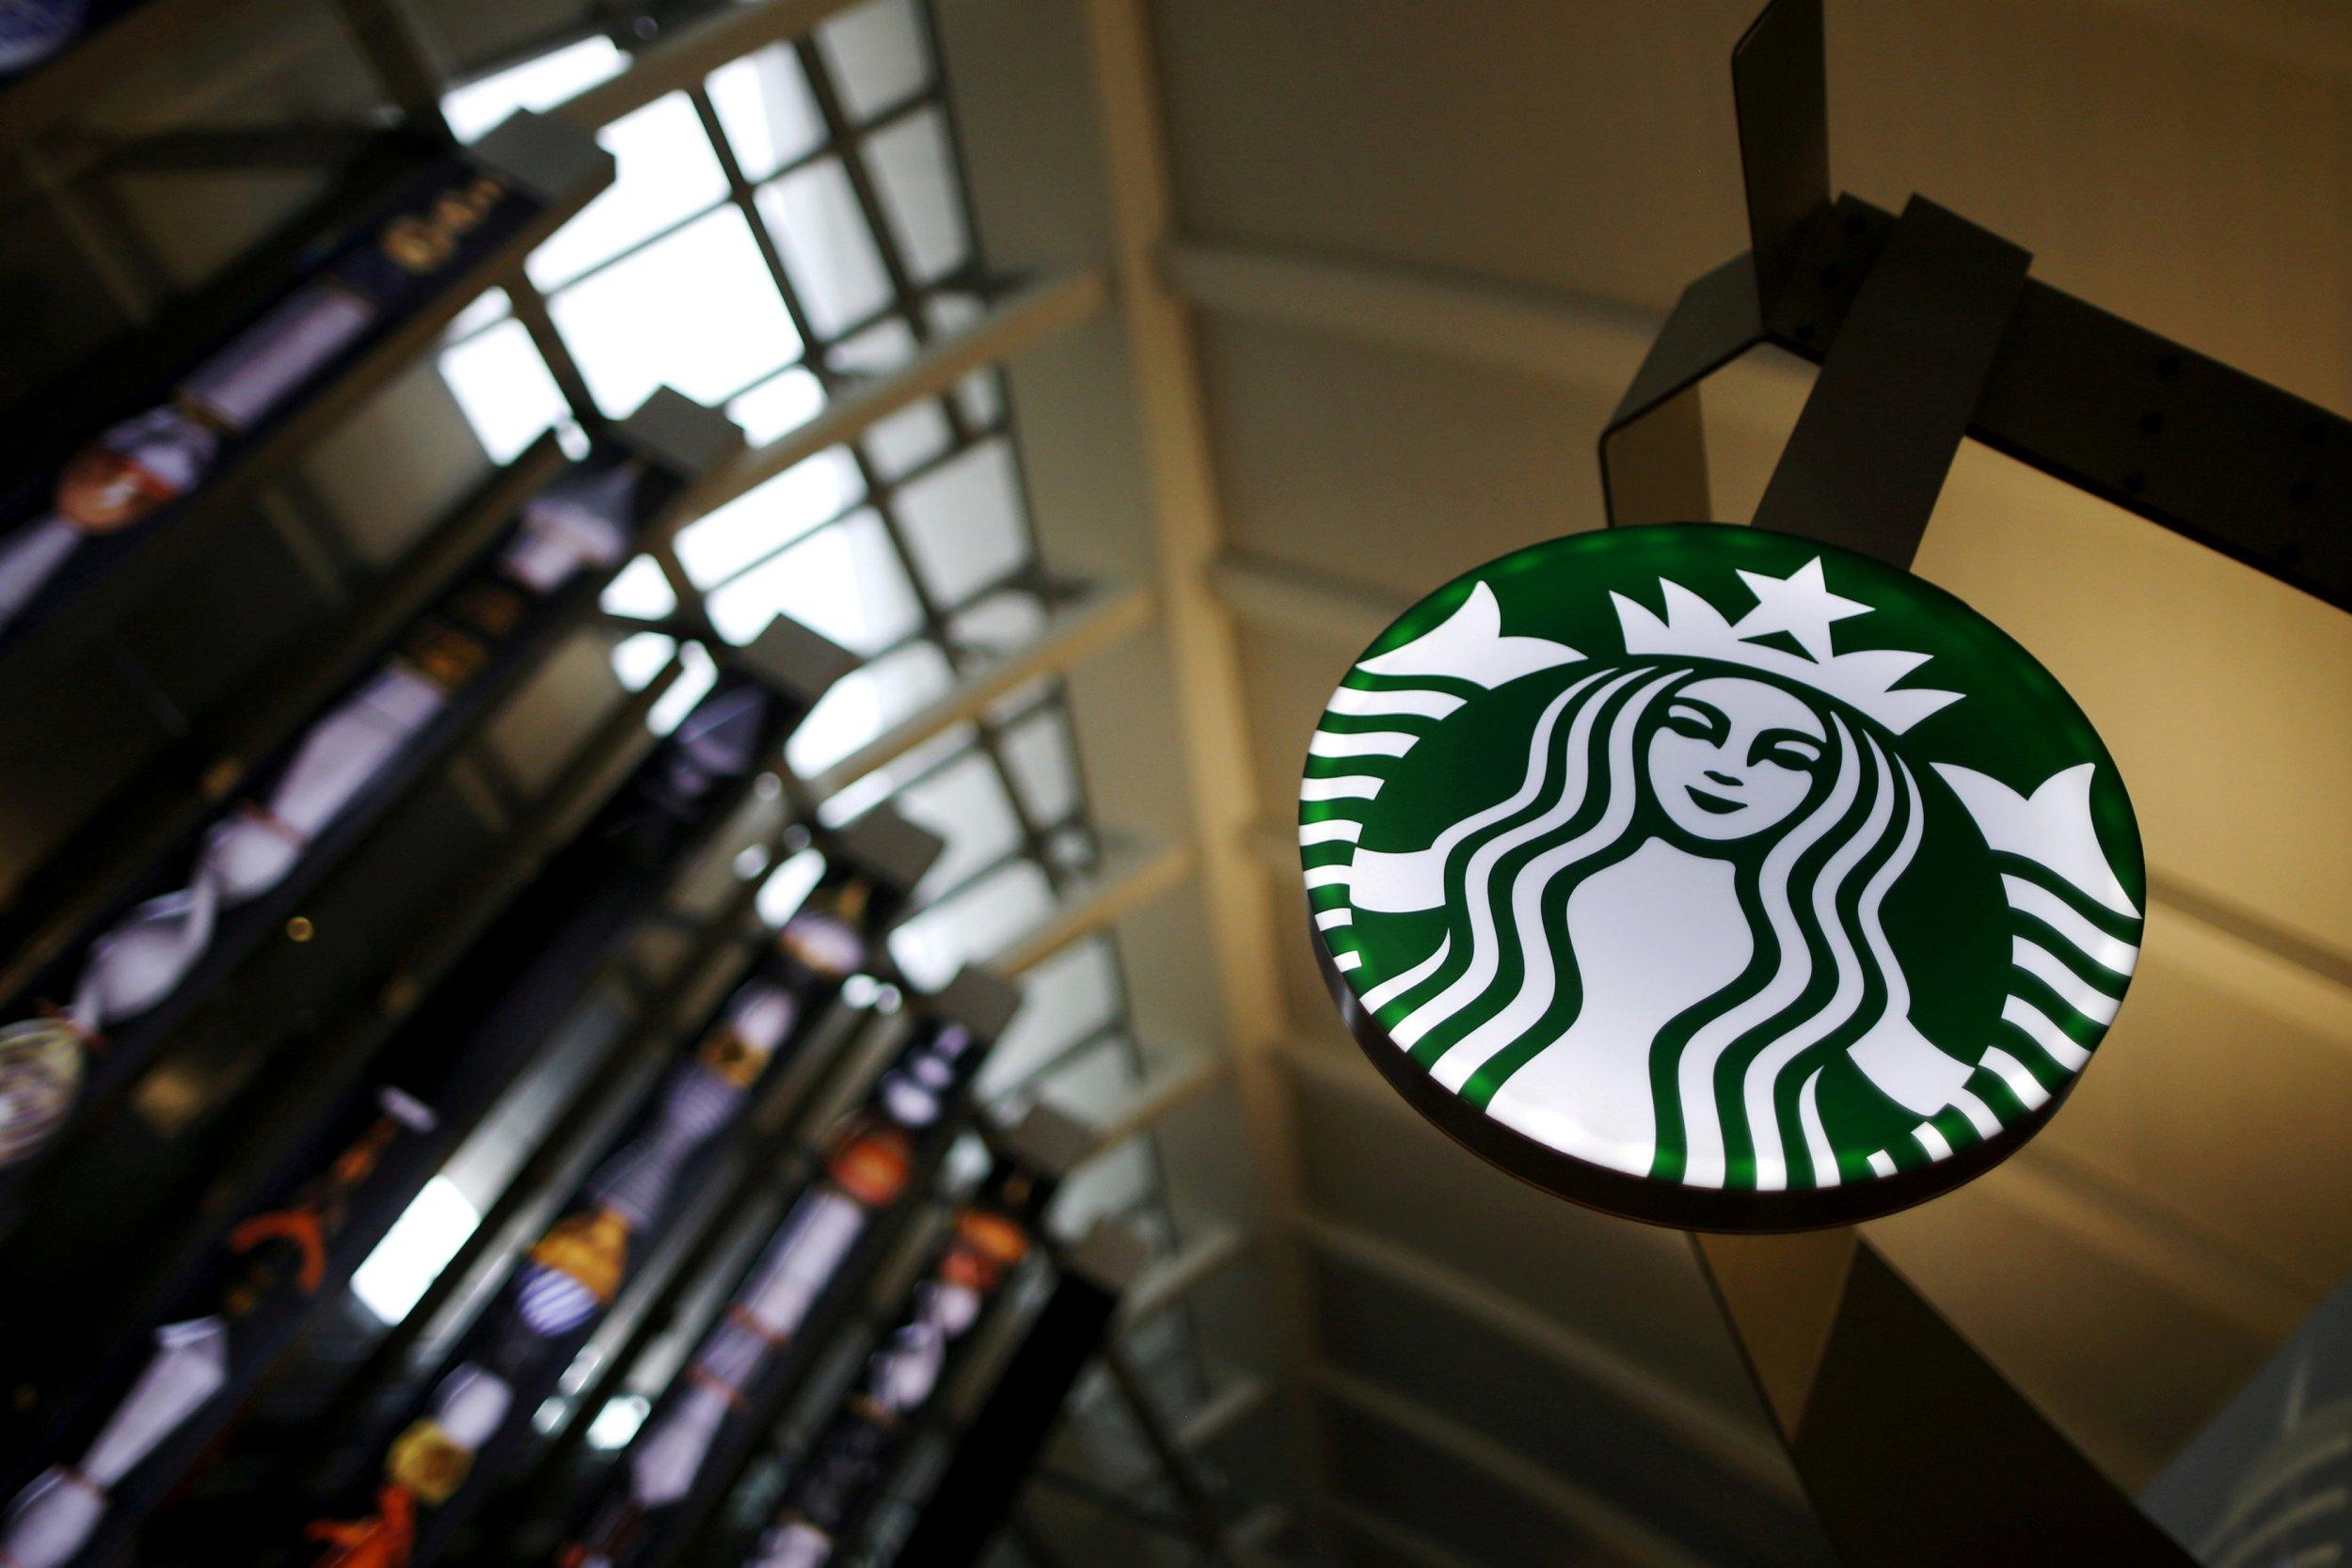 FILE PHOTO: A Starbucks store is seen inside the Tom Bradley terminal at LAX airport in Los Angeles, California, U.S. on October 27, 2015. REUTERS/Lucy Nicholson/File Photo